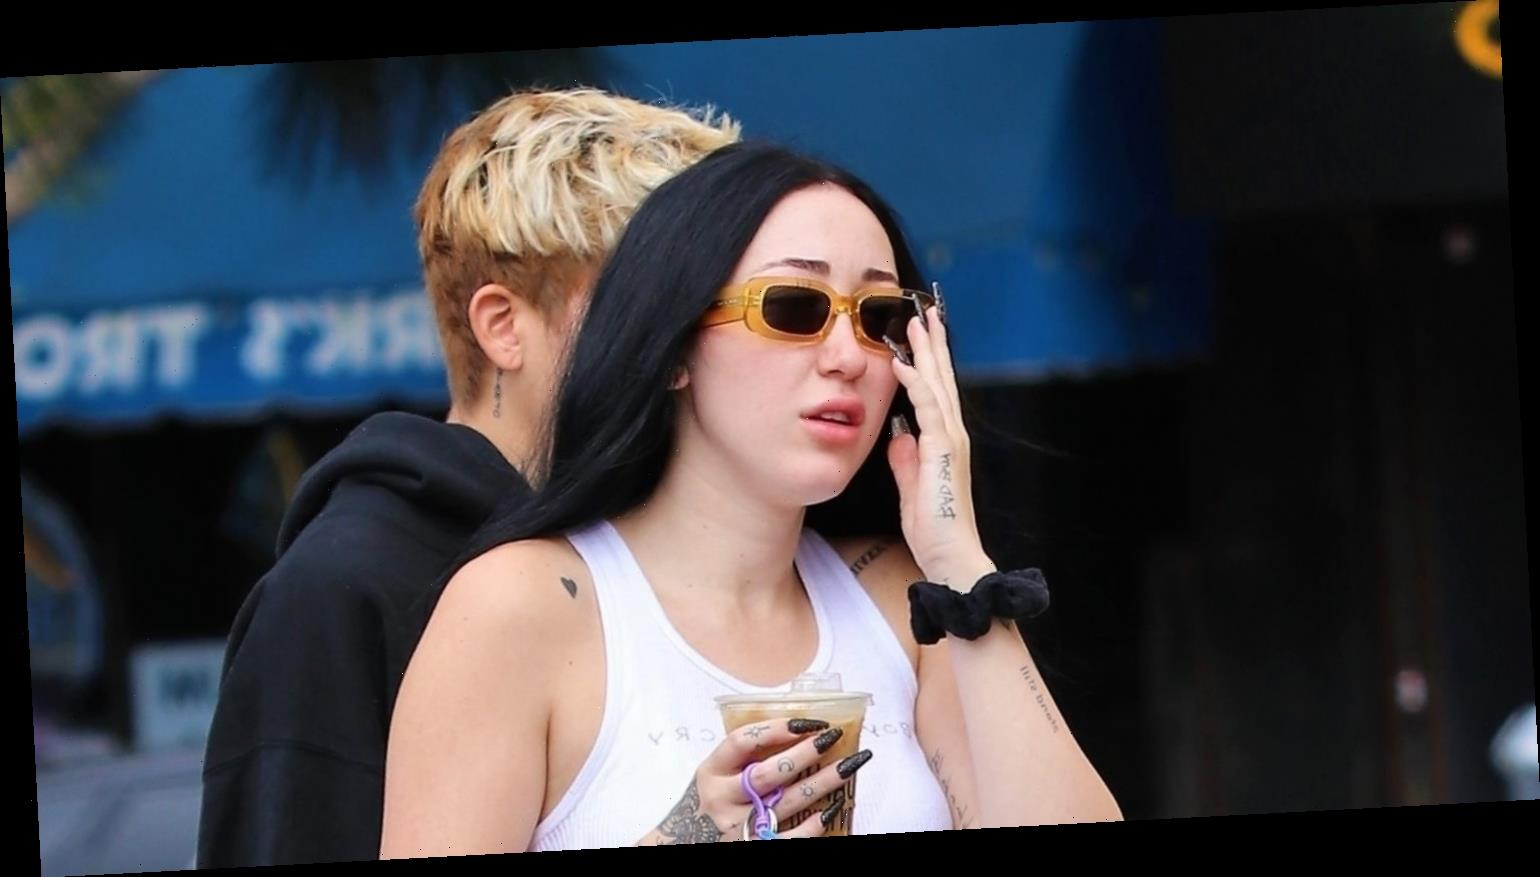 Noah Cyrus Releases Emotional New Song 'Lonely'